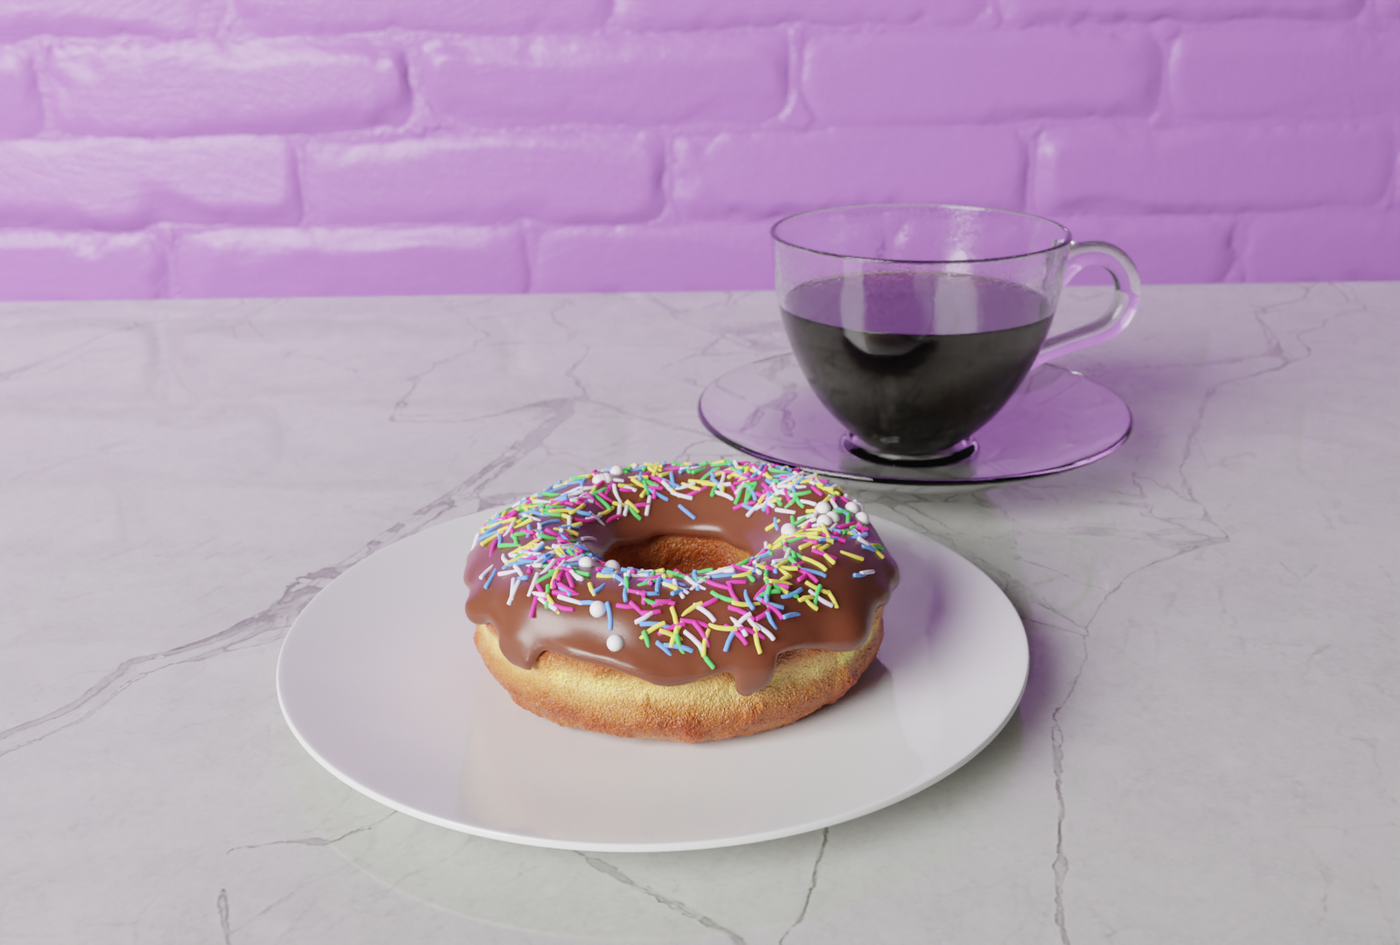 Coffee and donut with the final touches